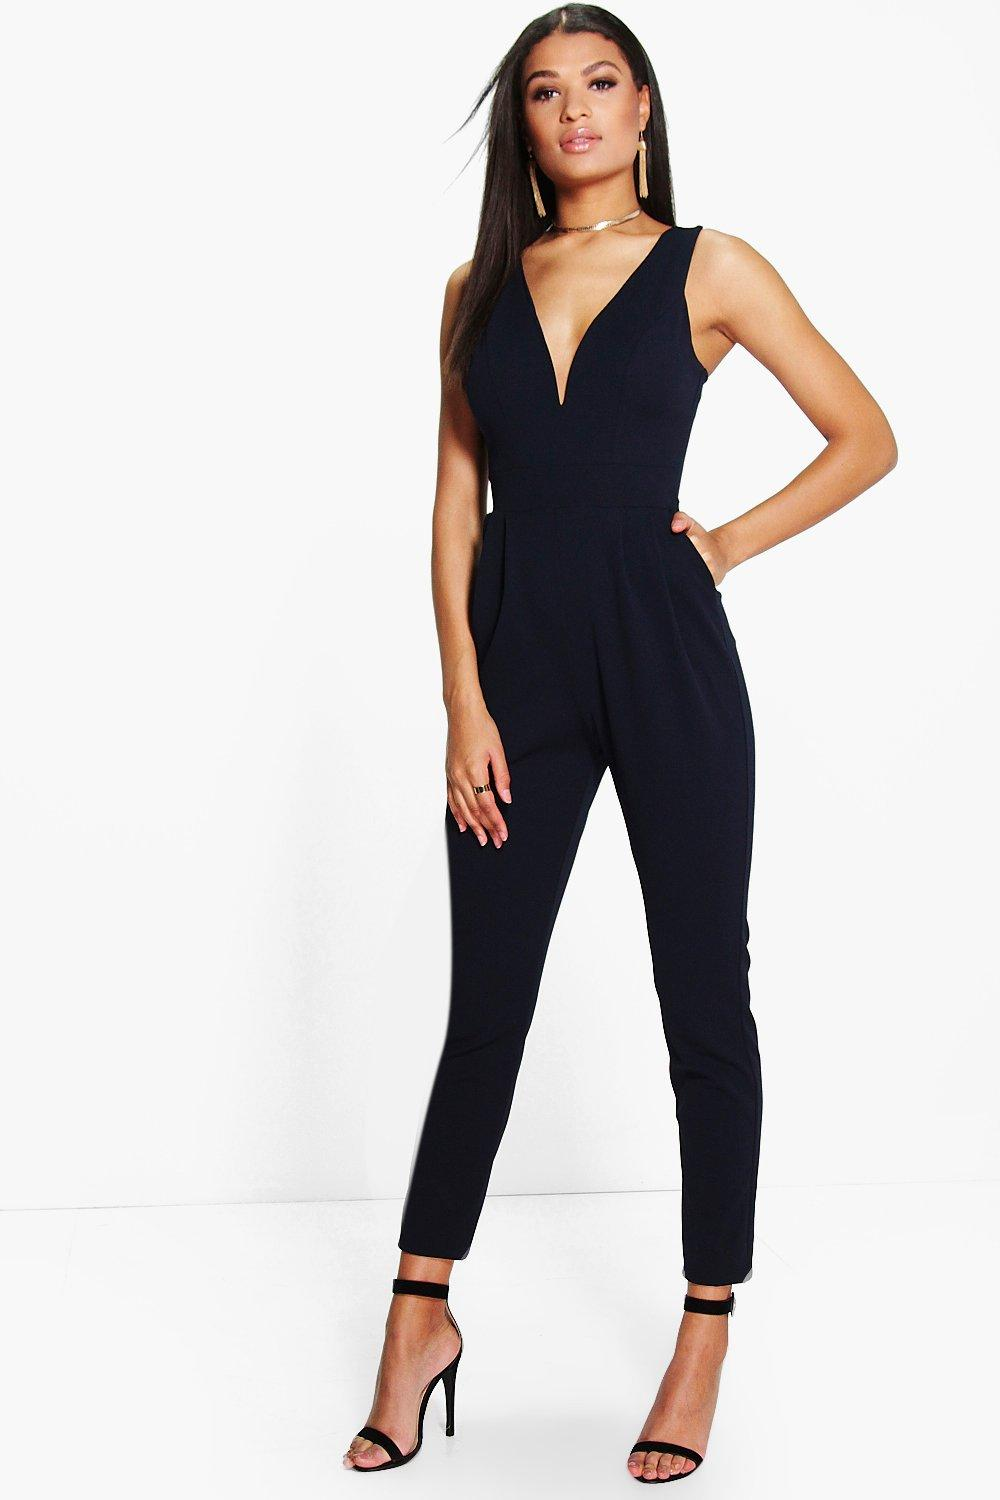 Shop All White Jumpsuits For Women at affordable prices from best All White Jumpsuits For Women store jomp16.tk The absolute largest selection of fashion clothing, wedding apparel and costumes with quality guaranteed online! White Jumpsuit Women Plunging Neck Long Sleeve Skinny Leg Jumpsuits. 10 Reviews $ Item Code:#